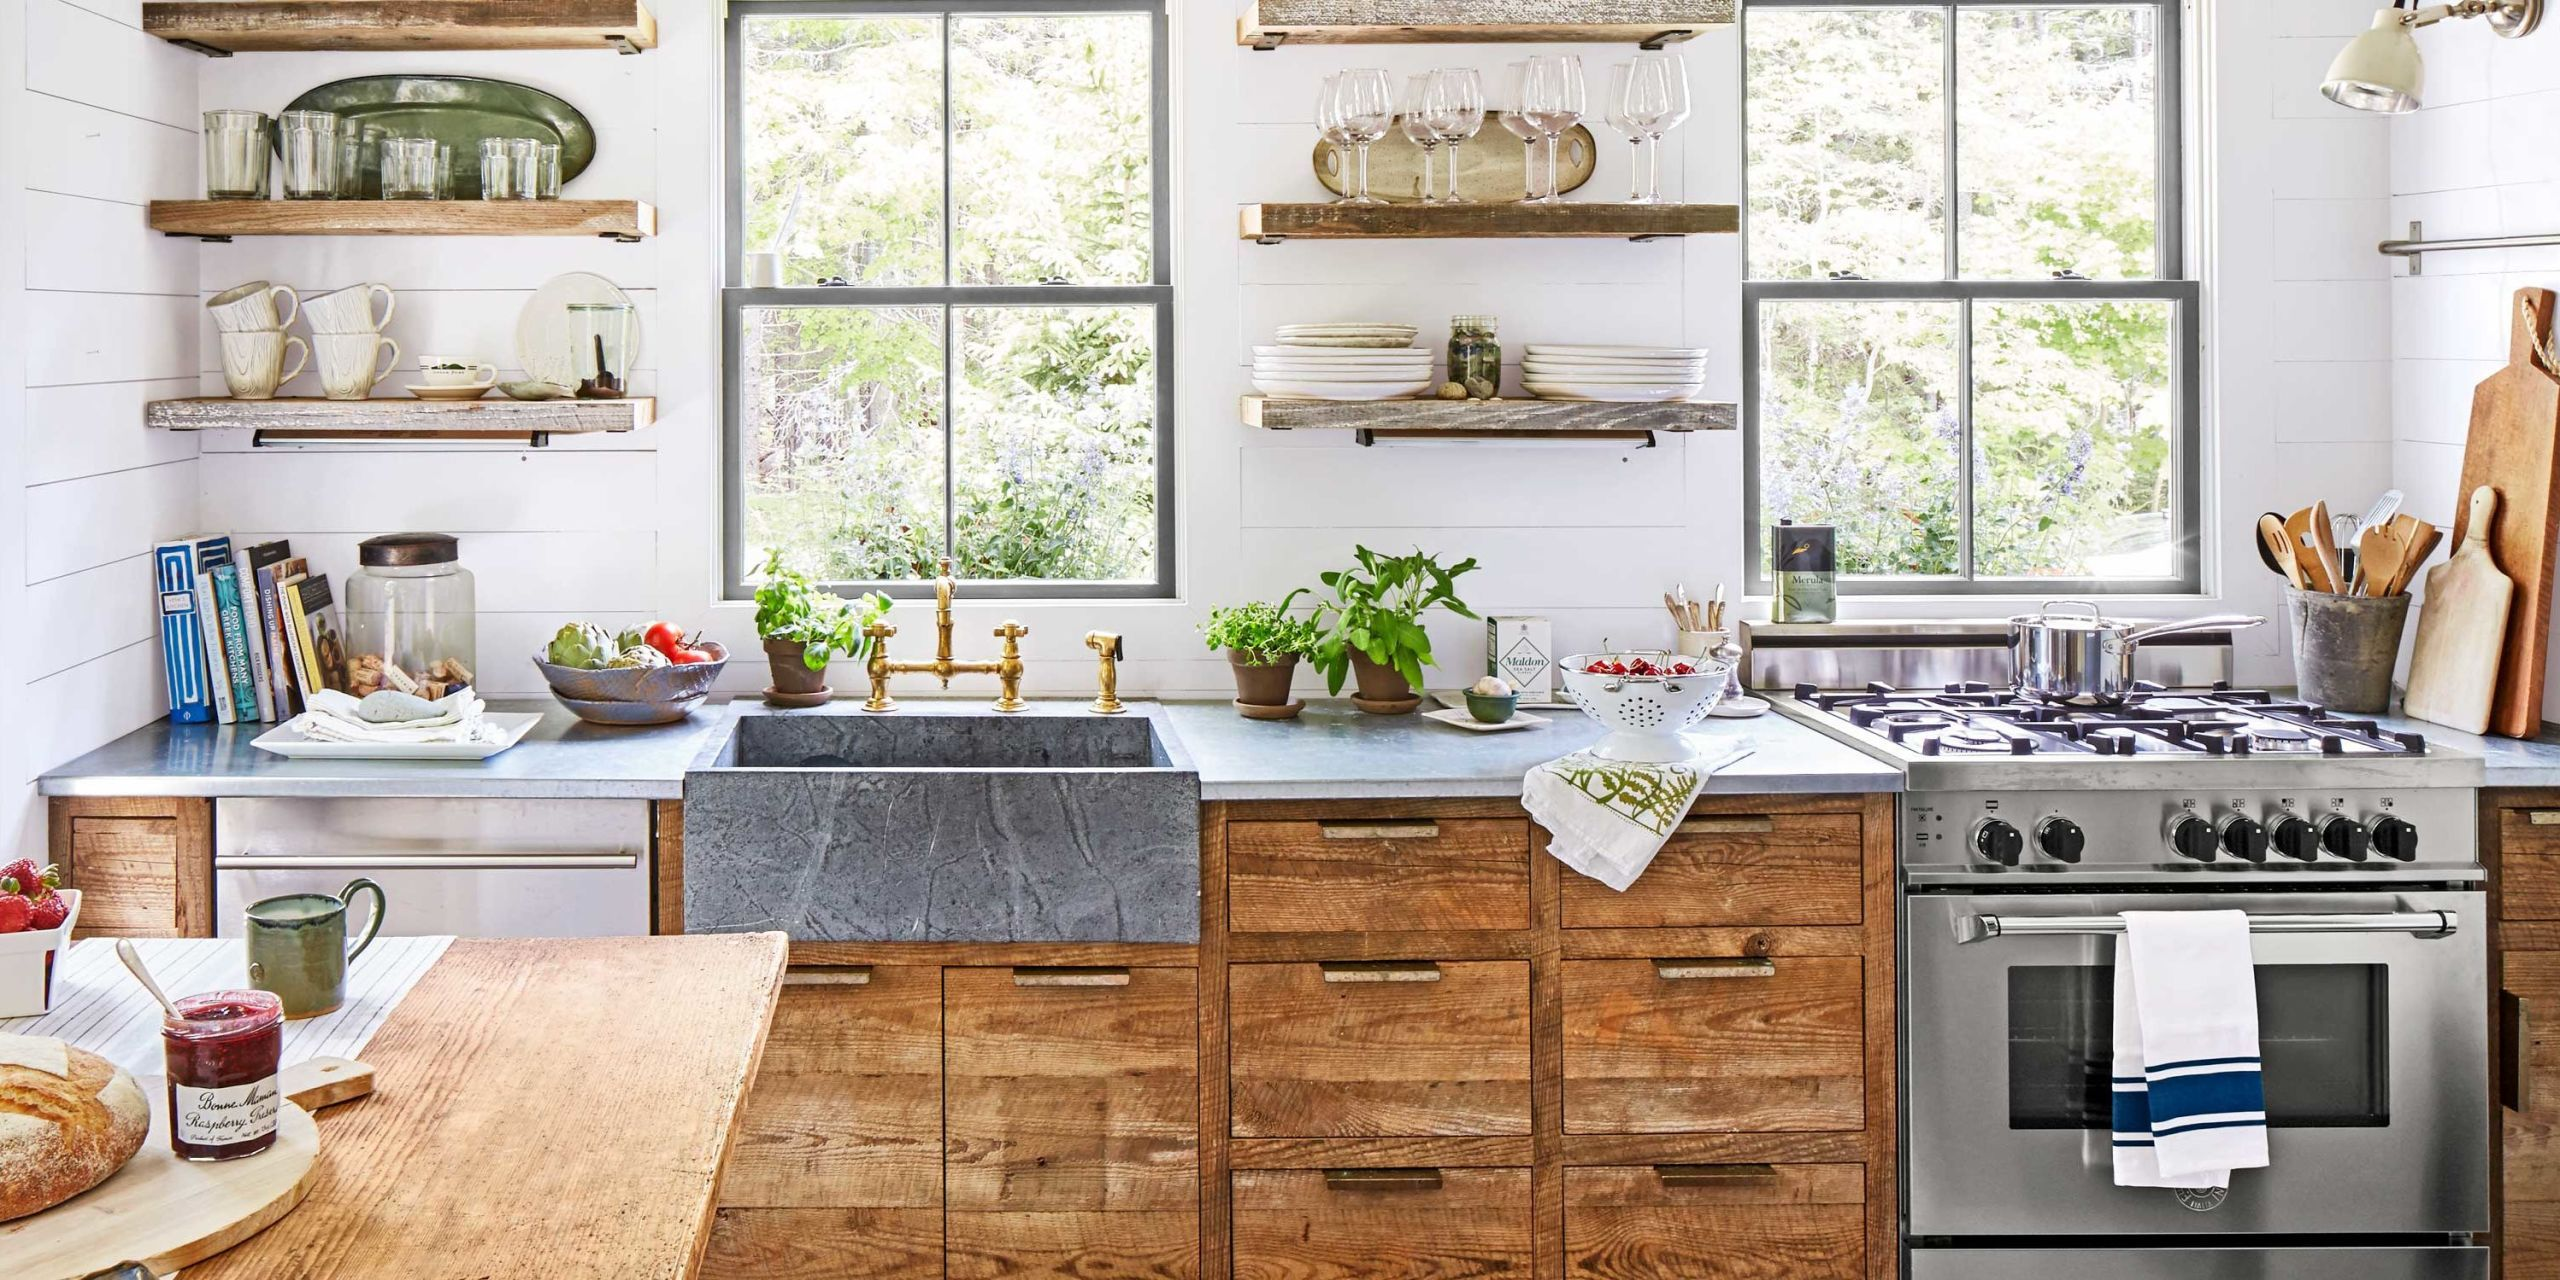 From bold design choices to affordable appliances our kitchen decorating ideas and inspiration pictures will help make this everyone\u0027s favorite room in the ... & 100+ Kitchen Design Ideas - Pictures of Country Kitchen Decorating ...